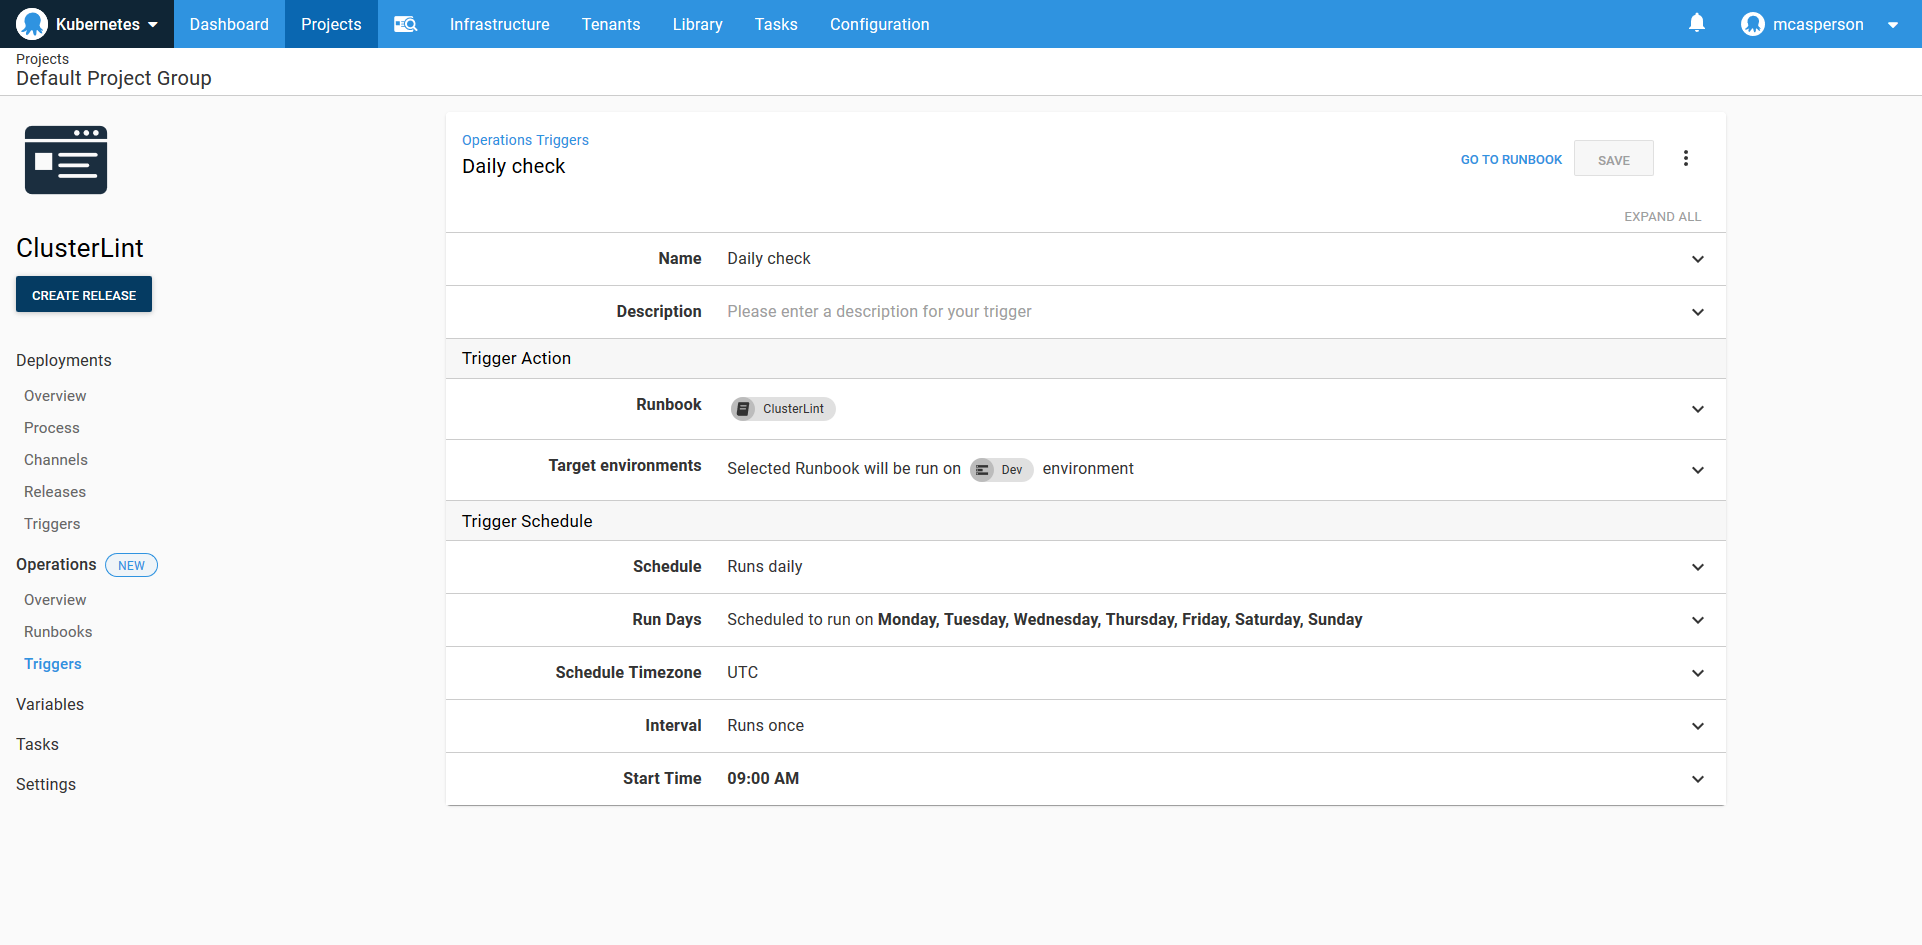 Octopus dashboard open on Projects tab and Operations Triggers page showing Daily check